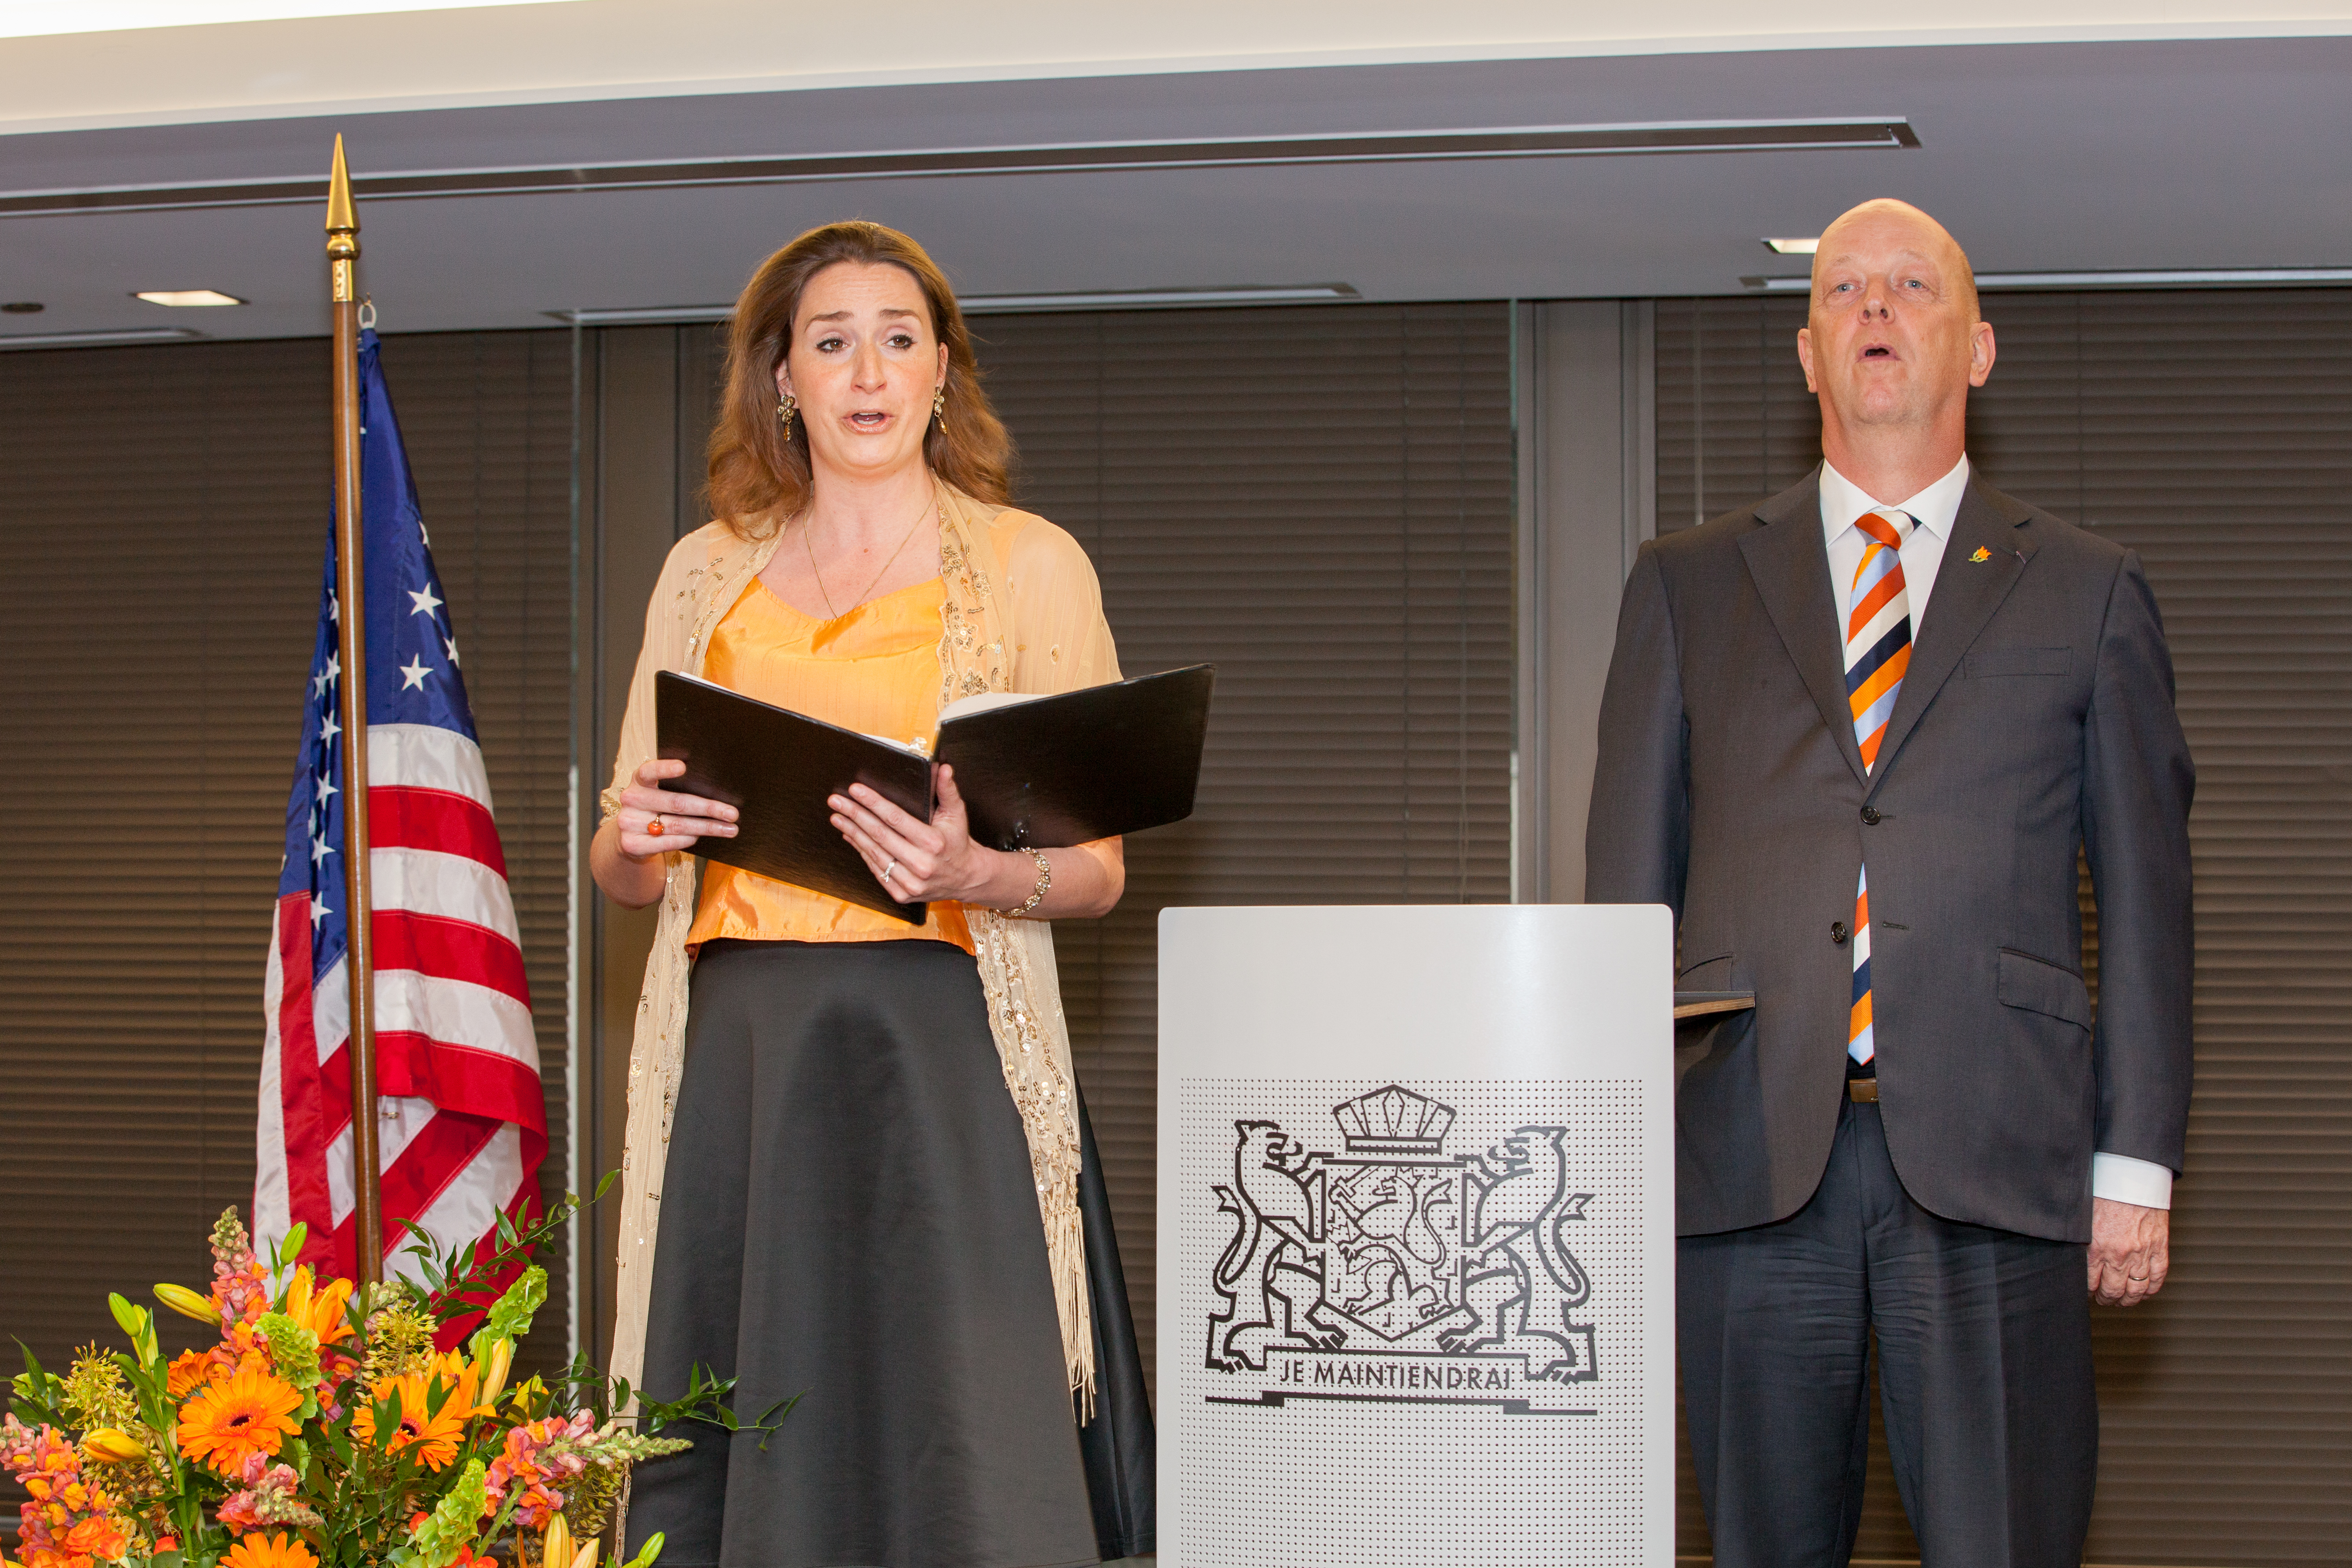 Formal meets informal for King's Day in Chicago